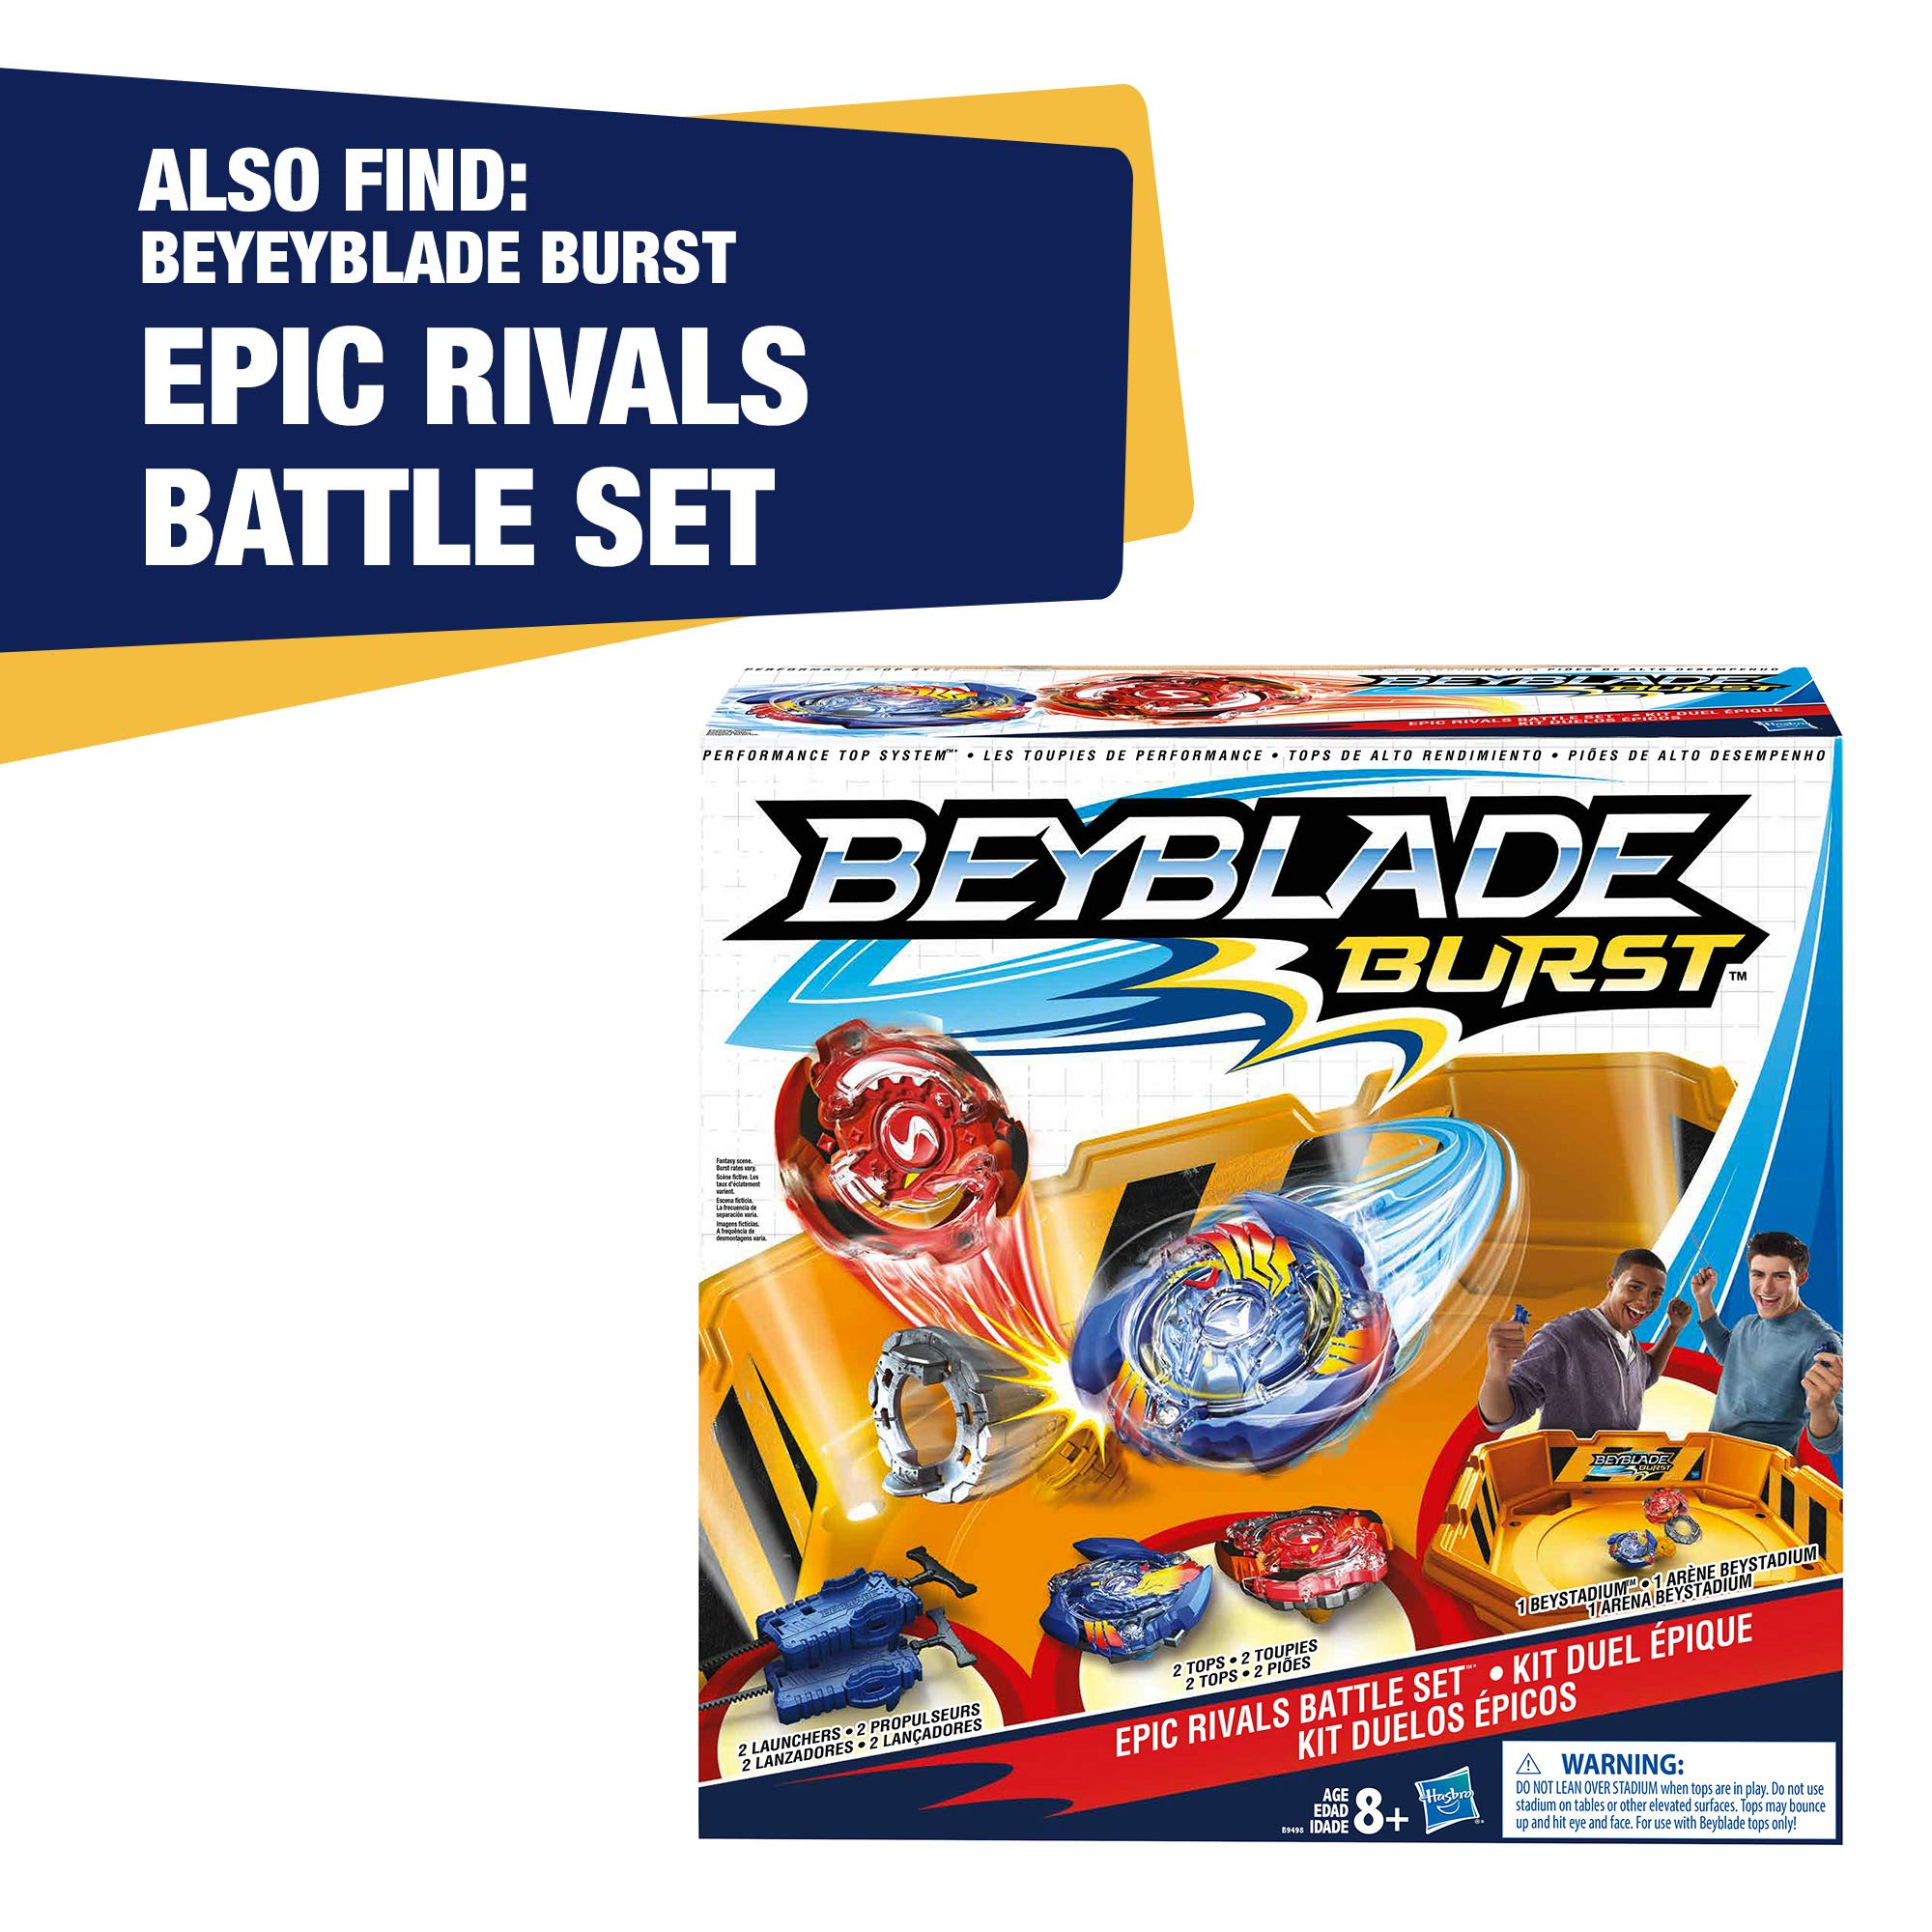 Beyblade Burst Evolution Elite Warrior 4-Pack - 4 Iconic Right-Spin Battling Tops, Age 8+ Toy E2458AC1 (Amazon Exclusive) by BEYBLADE (Image #6)